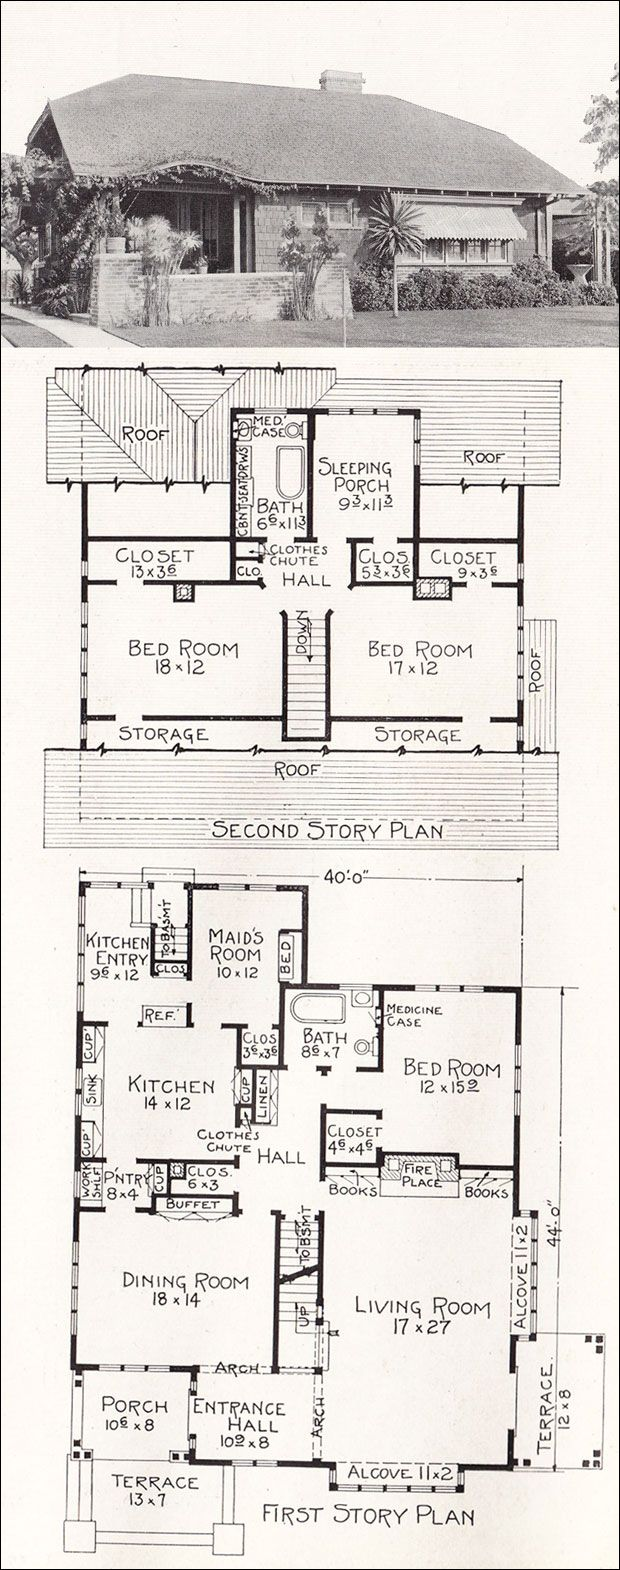 Best 25 vintage house plans ideas on pinterest bungalow for House plans with sleeping porch